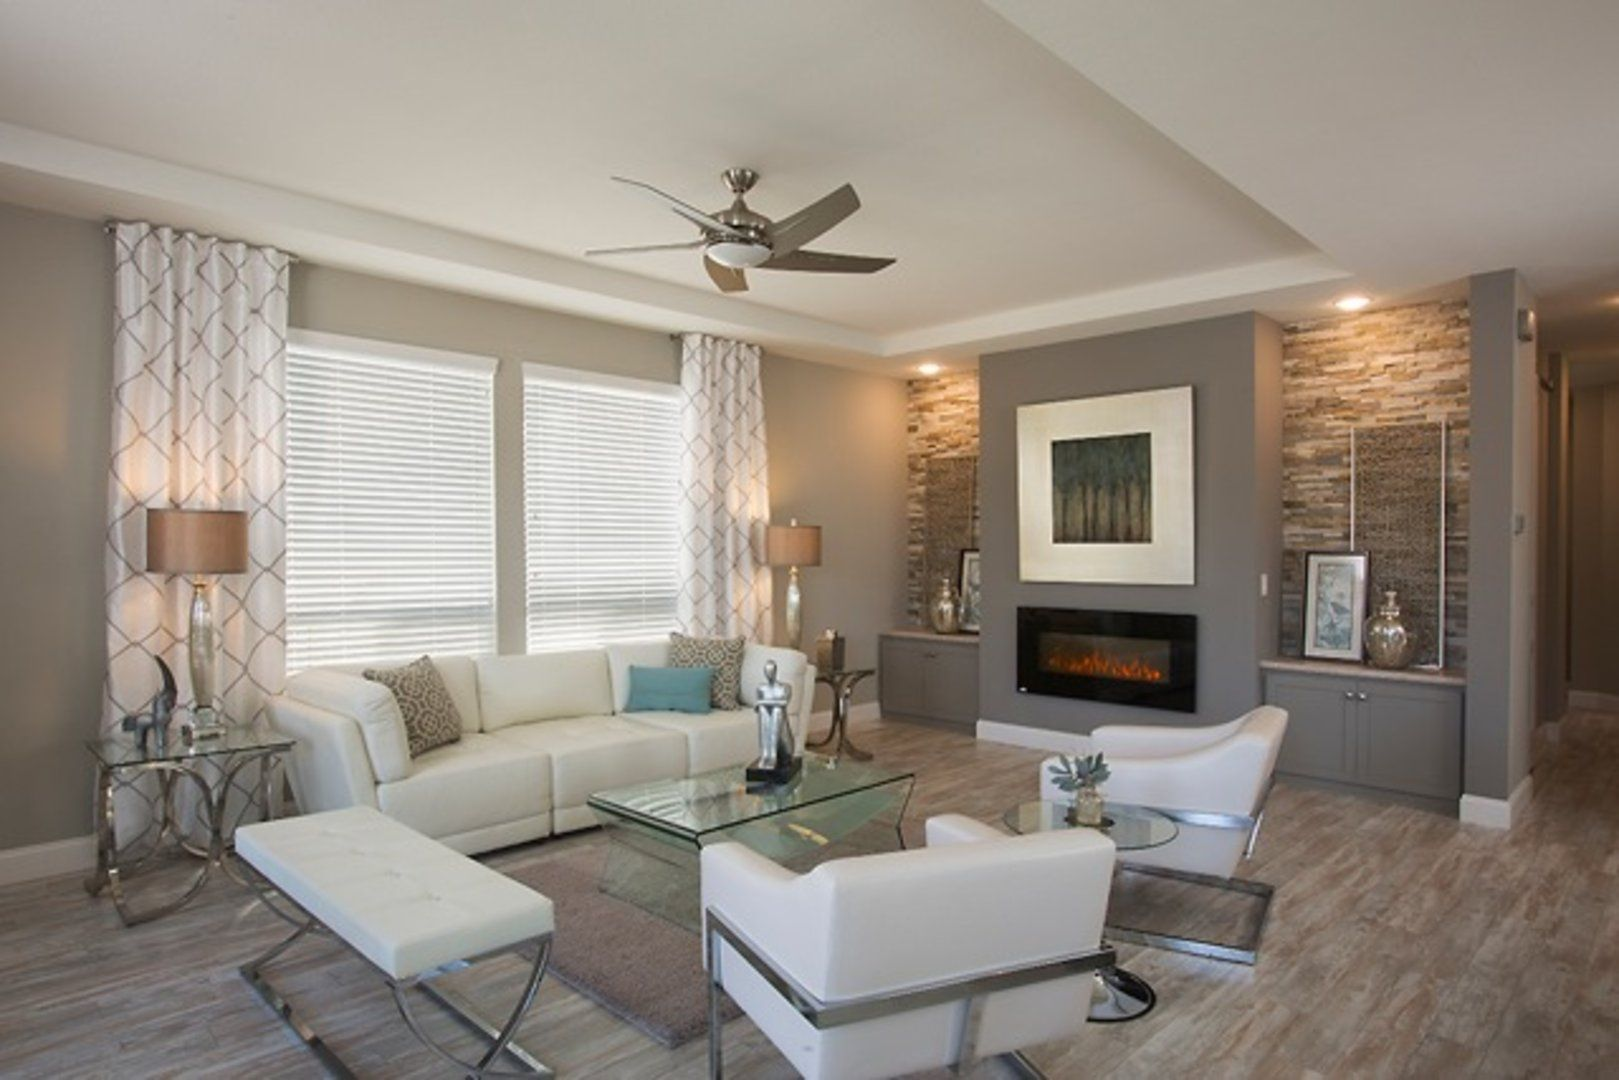 Manufactured Homes Living Areas - Silvercrest Homes | Lynne's Home on best log home manufacturers, best travel trailer manufacturers, best nursing homes,